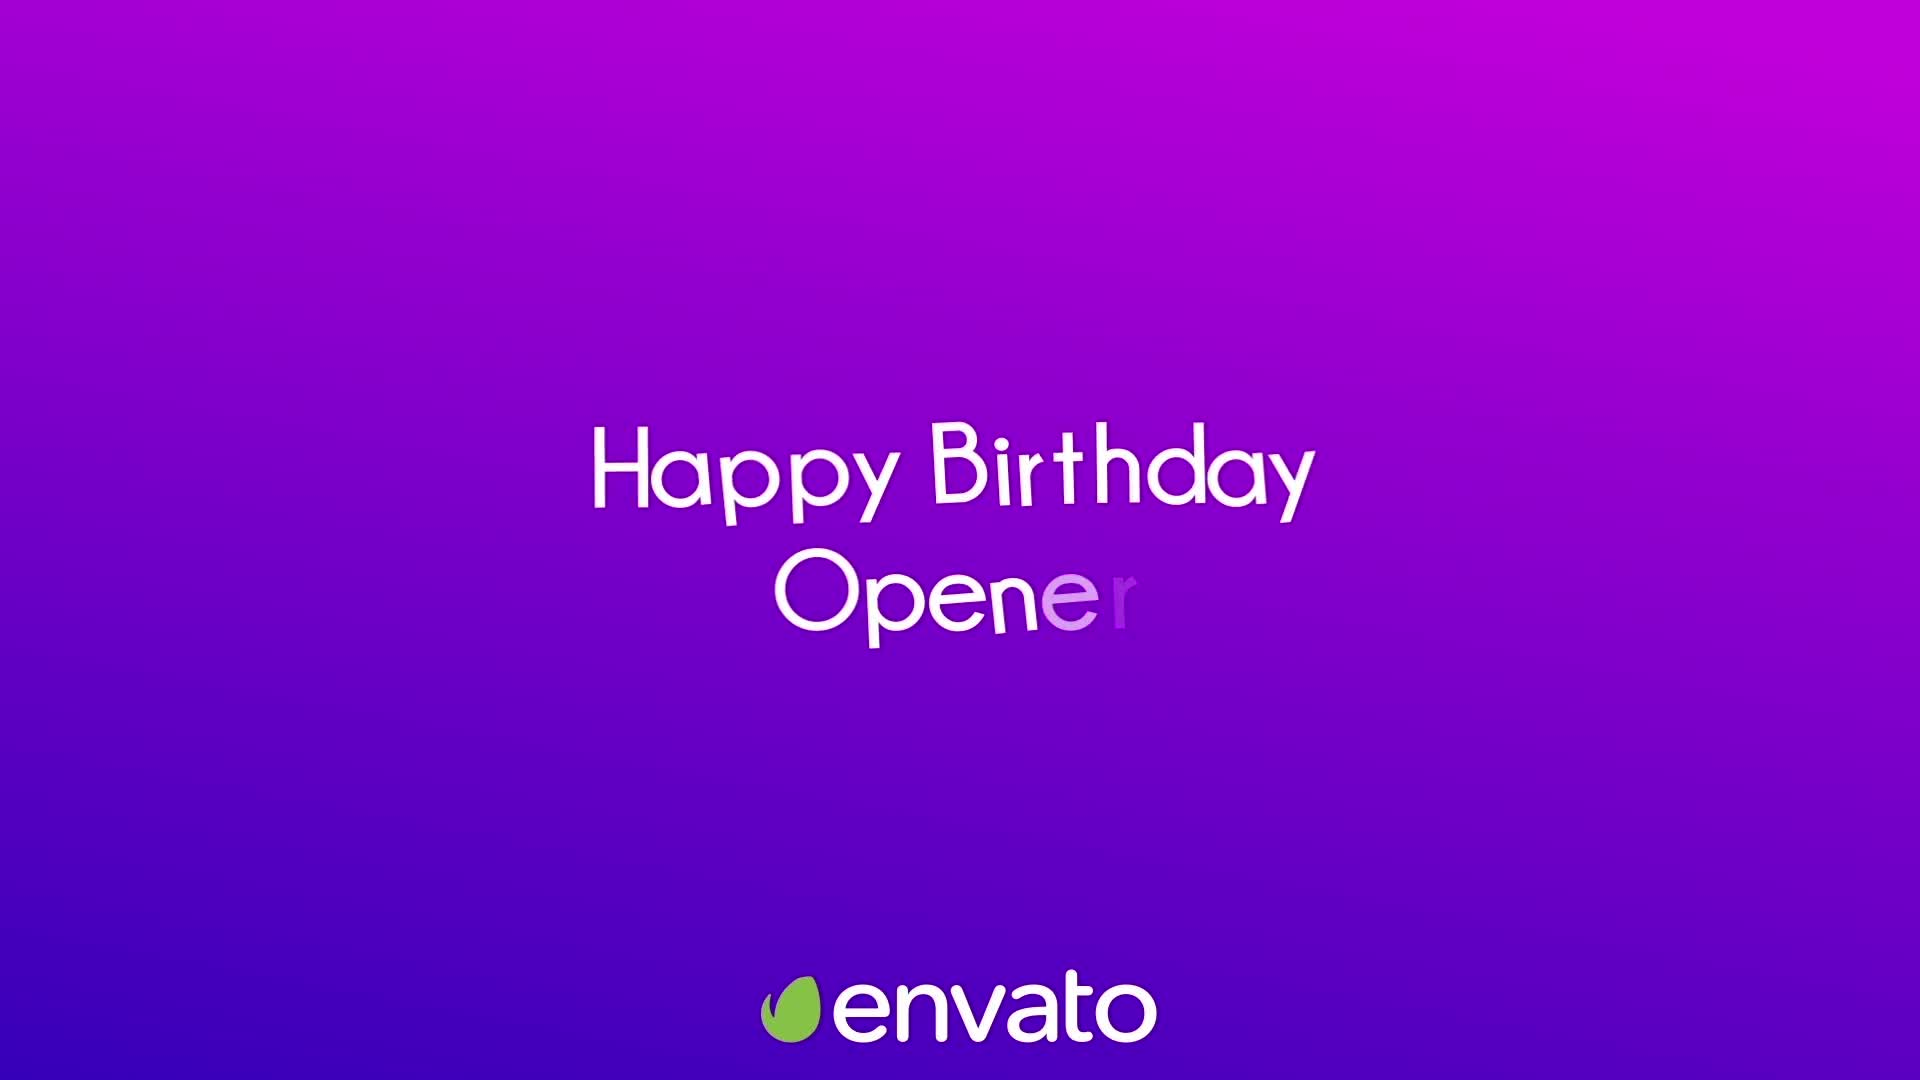 Happy Birthday Opener Videohive 31642133 After Effects Image 1